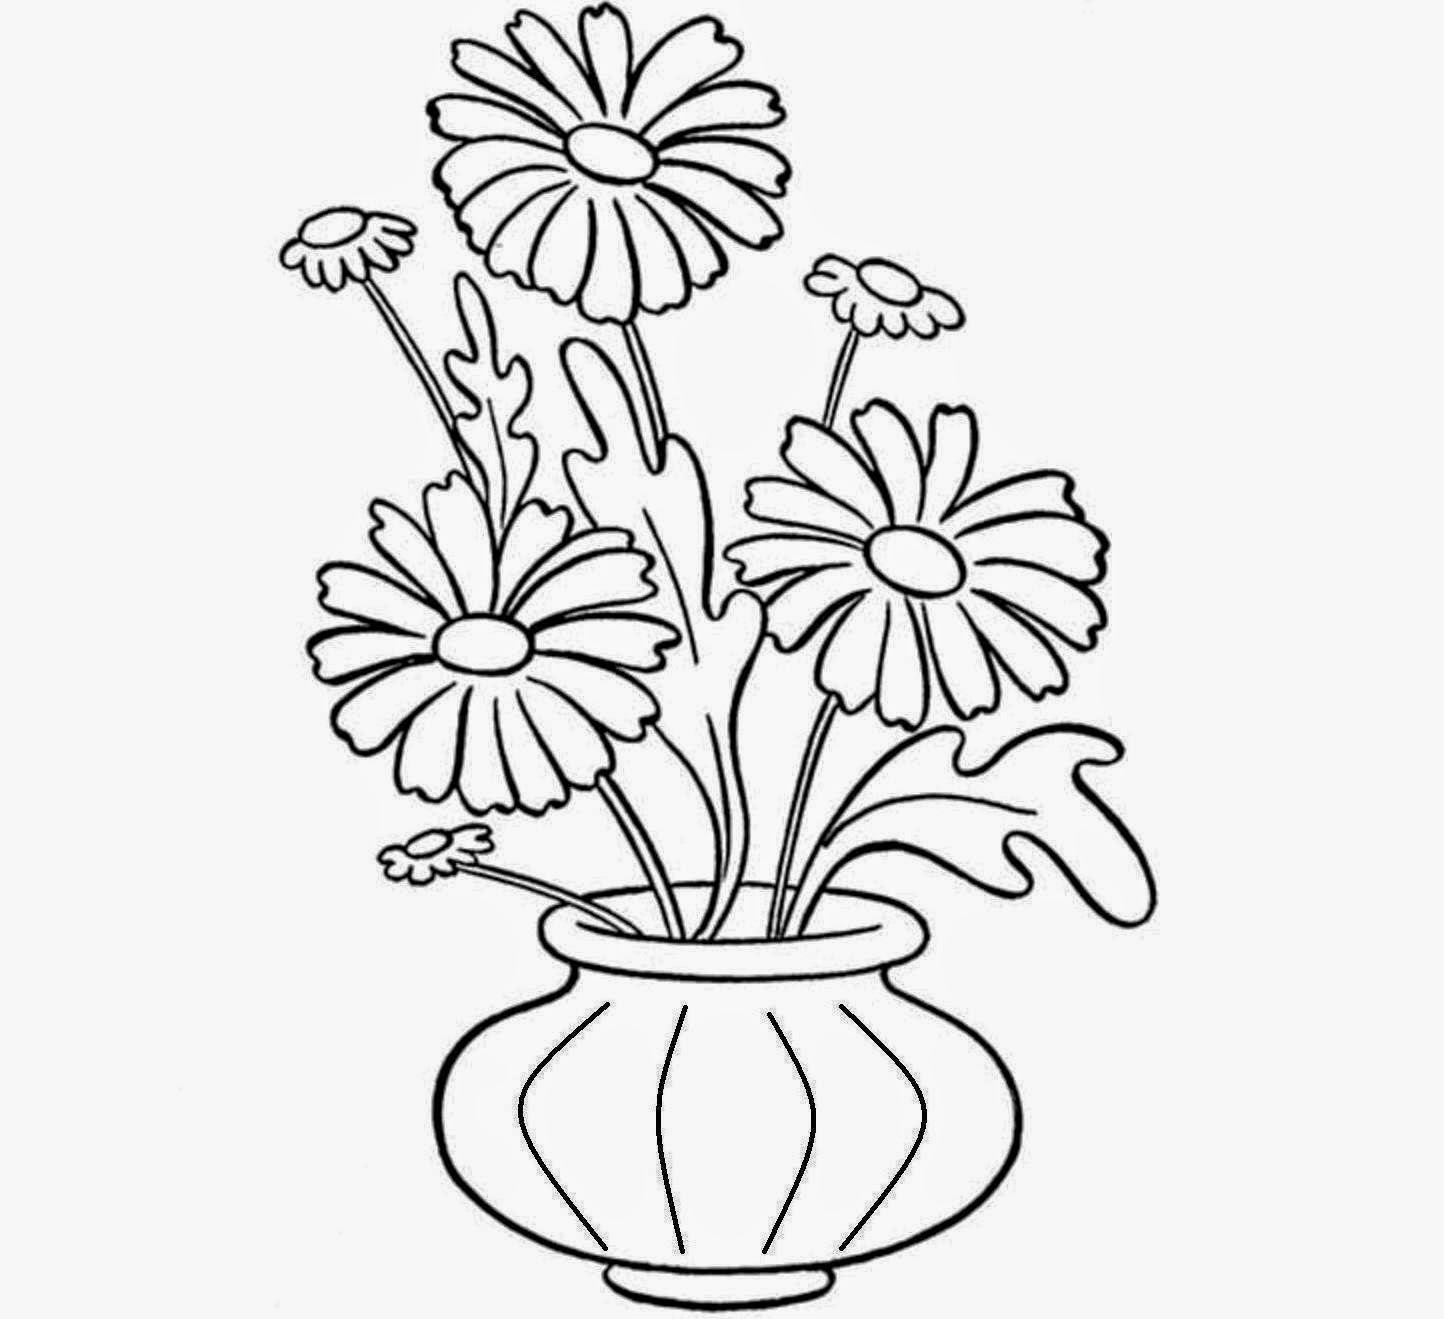 1444x1319 Pencil Drawing Of Flowers In Flower Pot Rose Flower Drawings. Dog